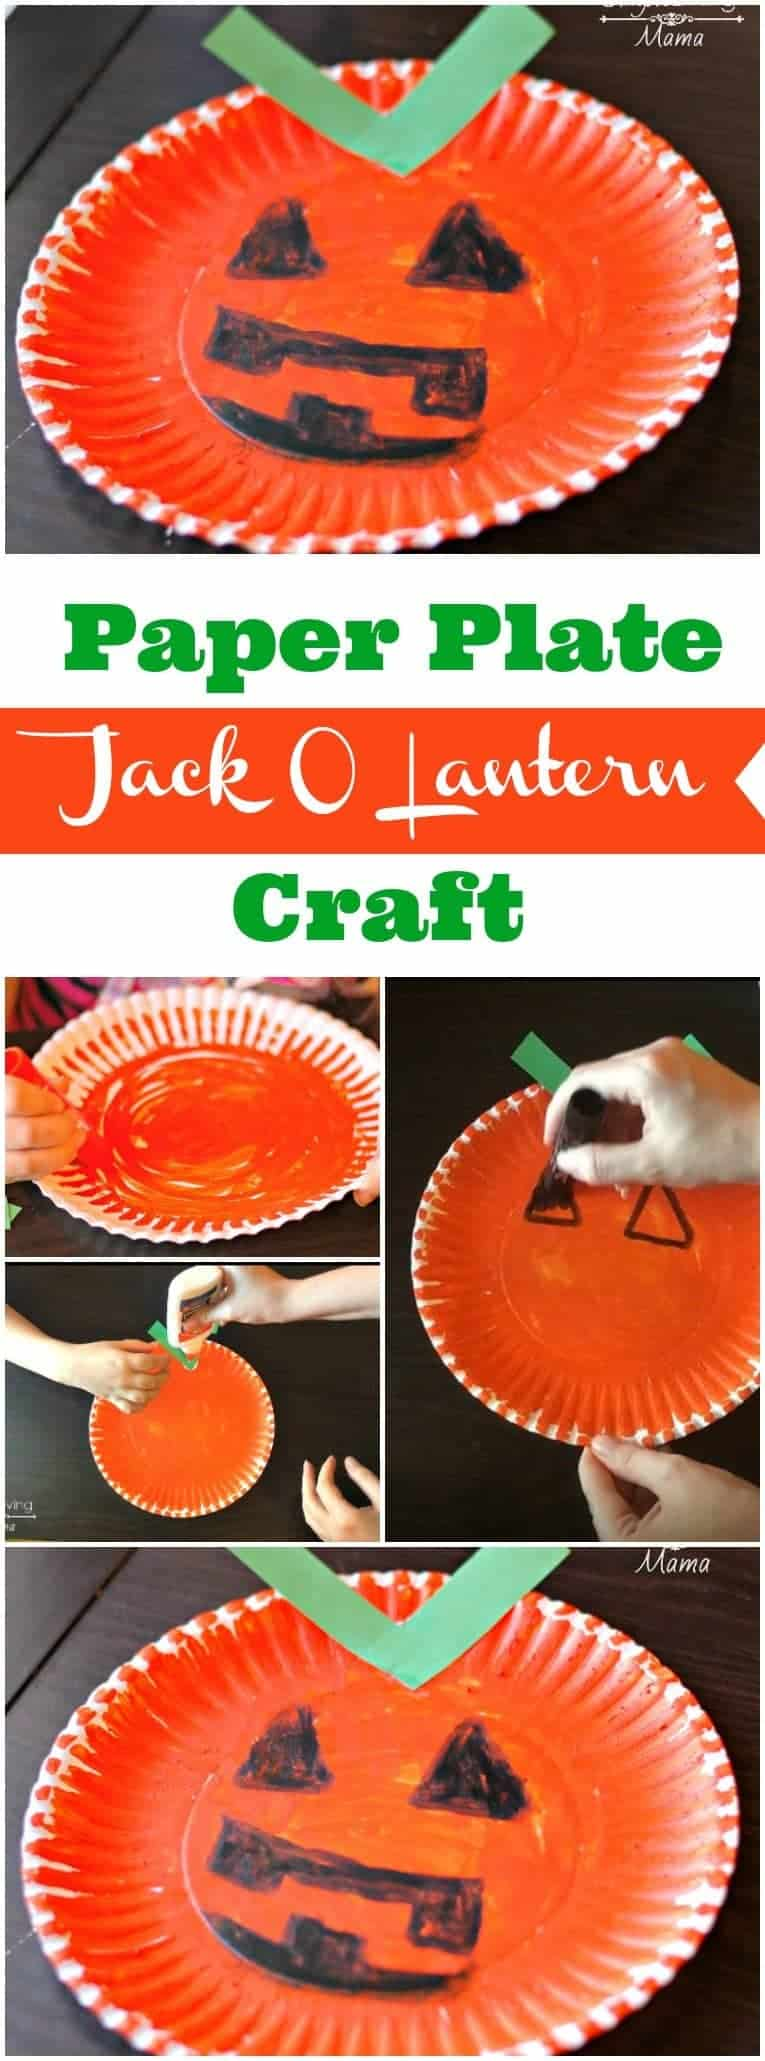 A DIY paper plate Jack O Lantern craft for kids that is so easy and fun to do!